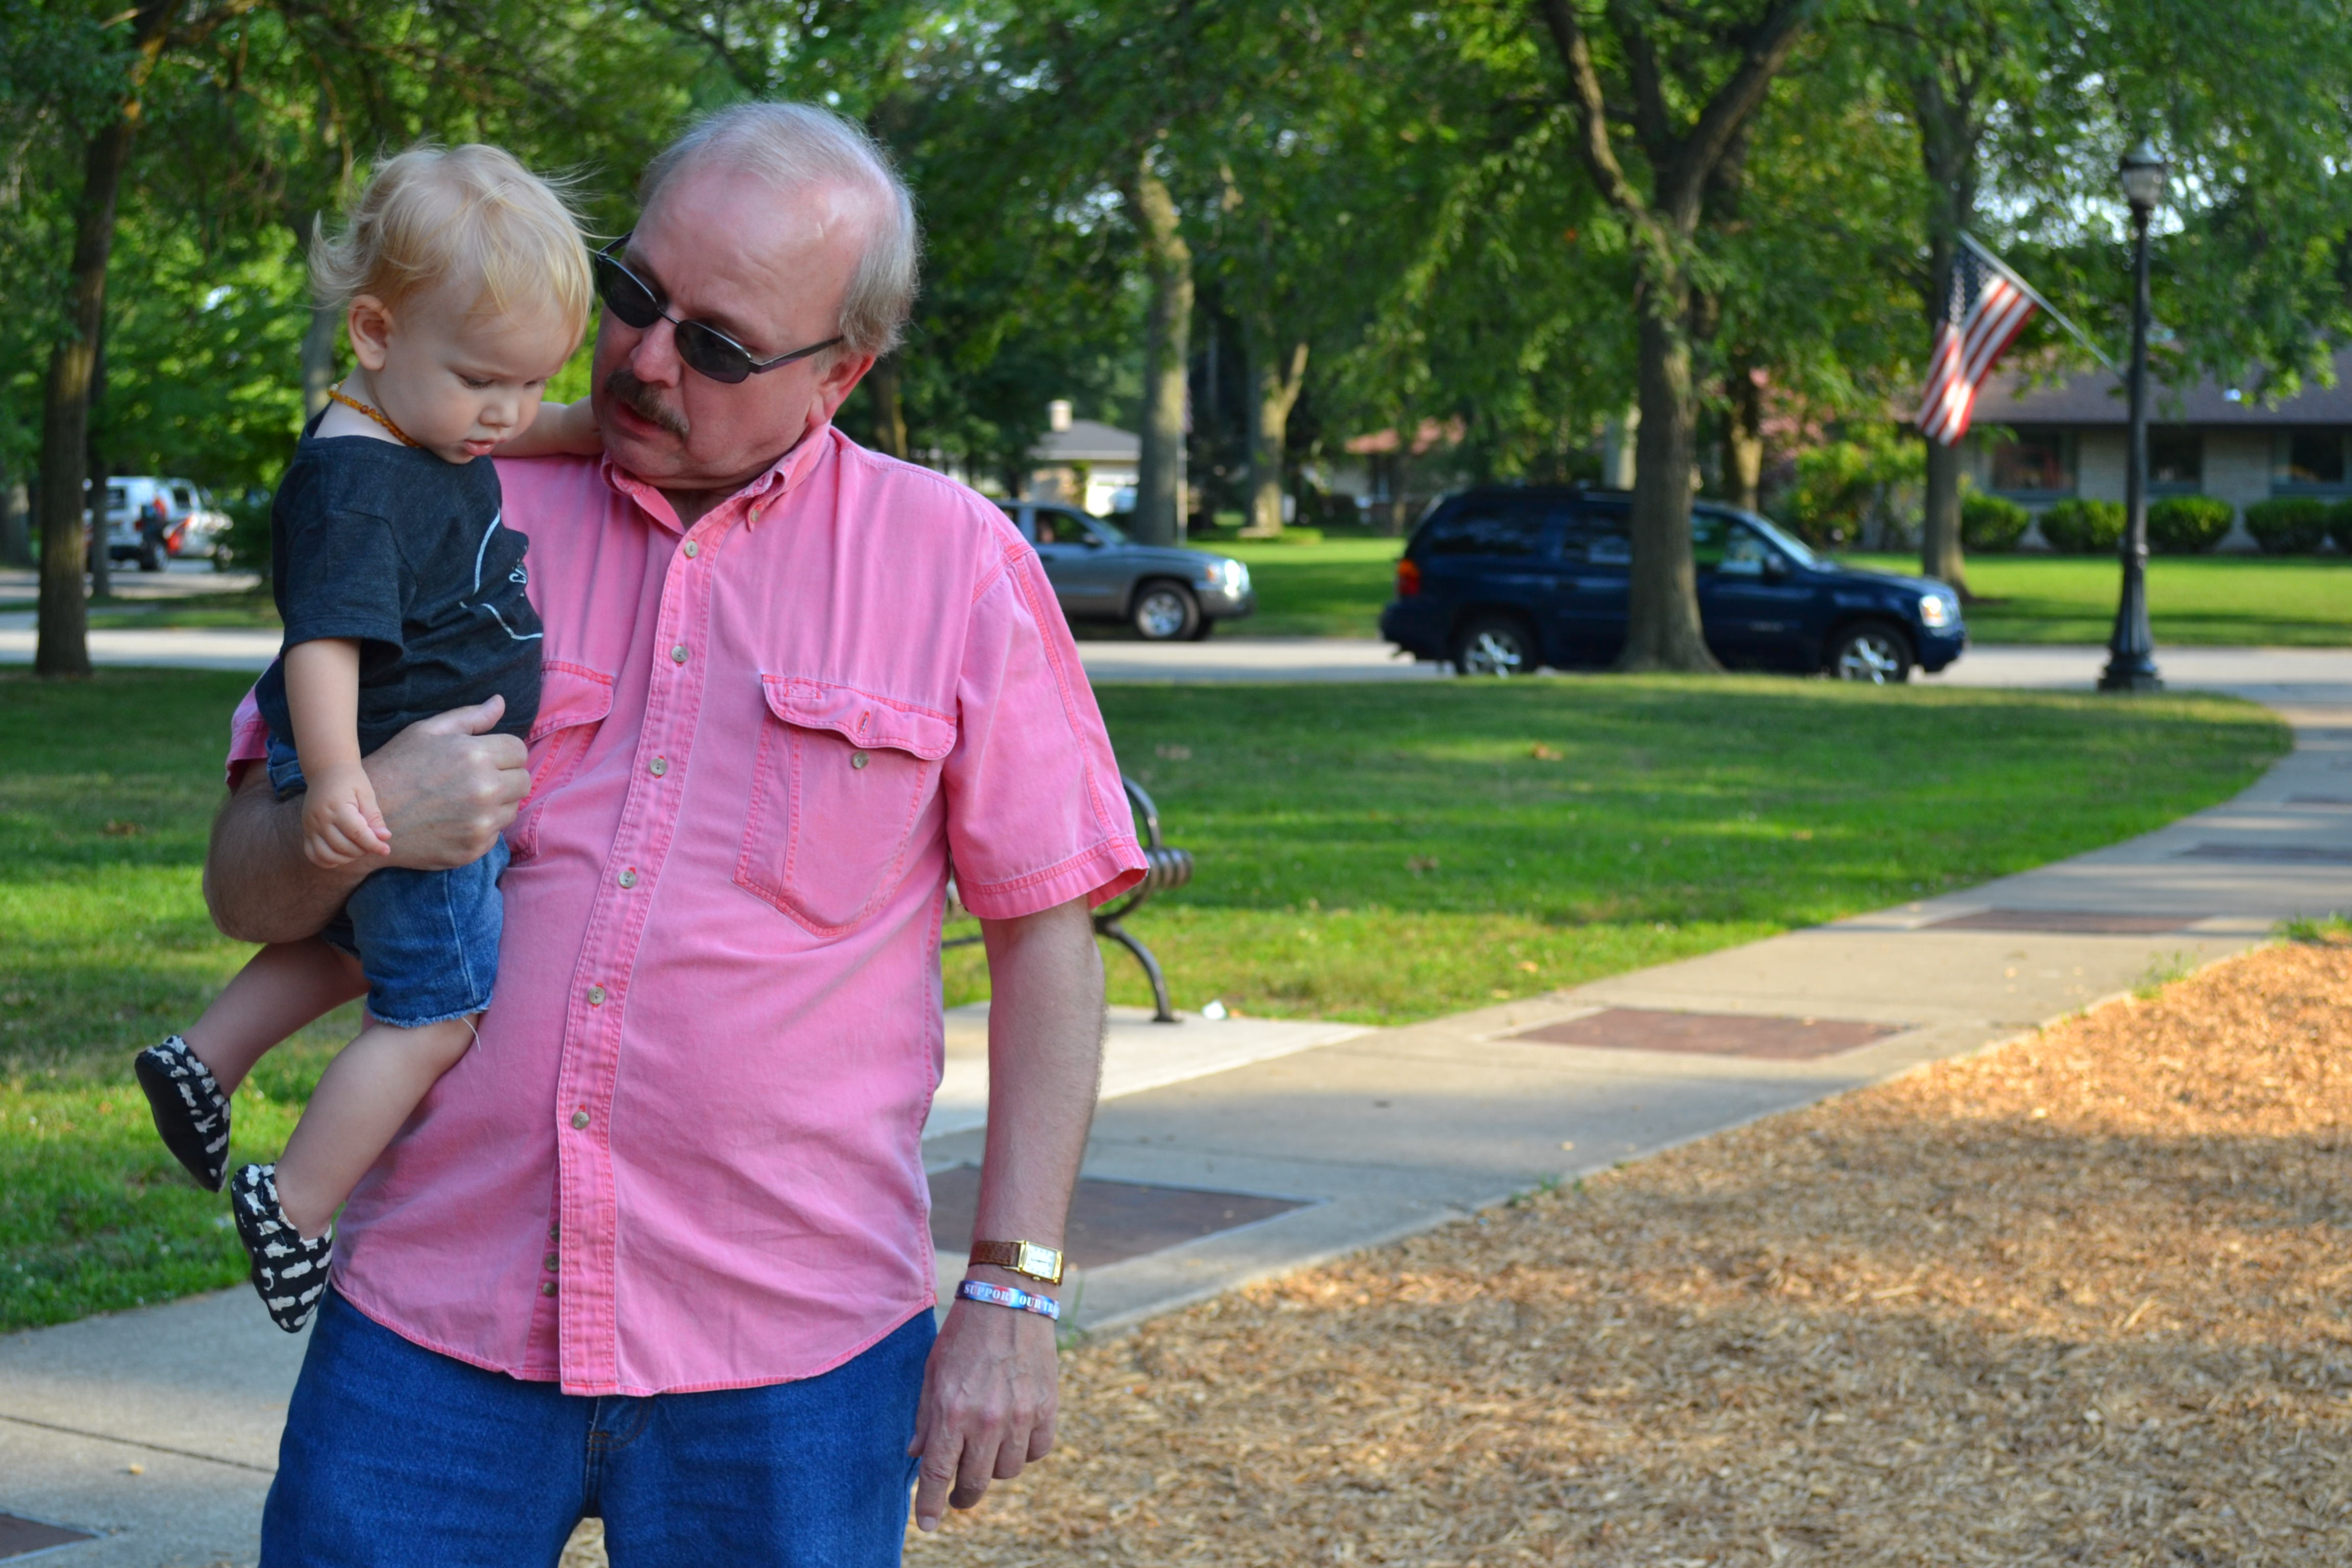 during our visit to Chicago, Lincoln spent some time at the park with Grandpa